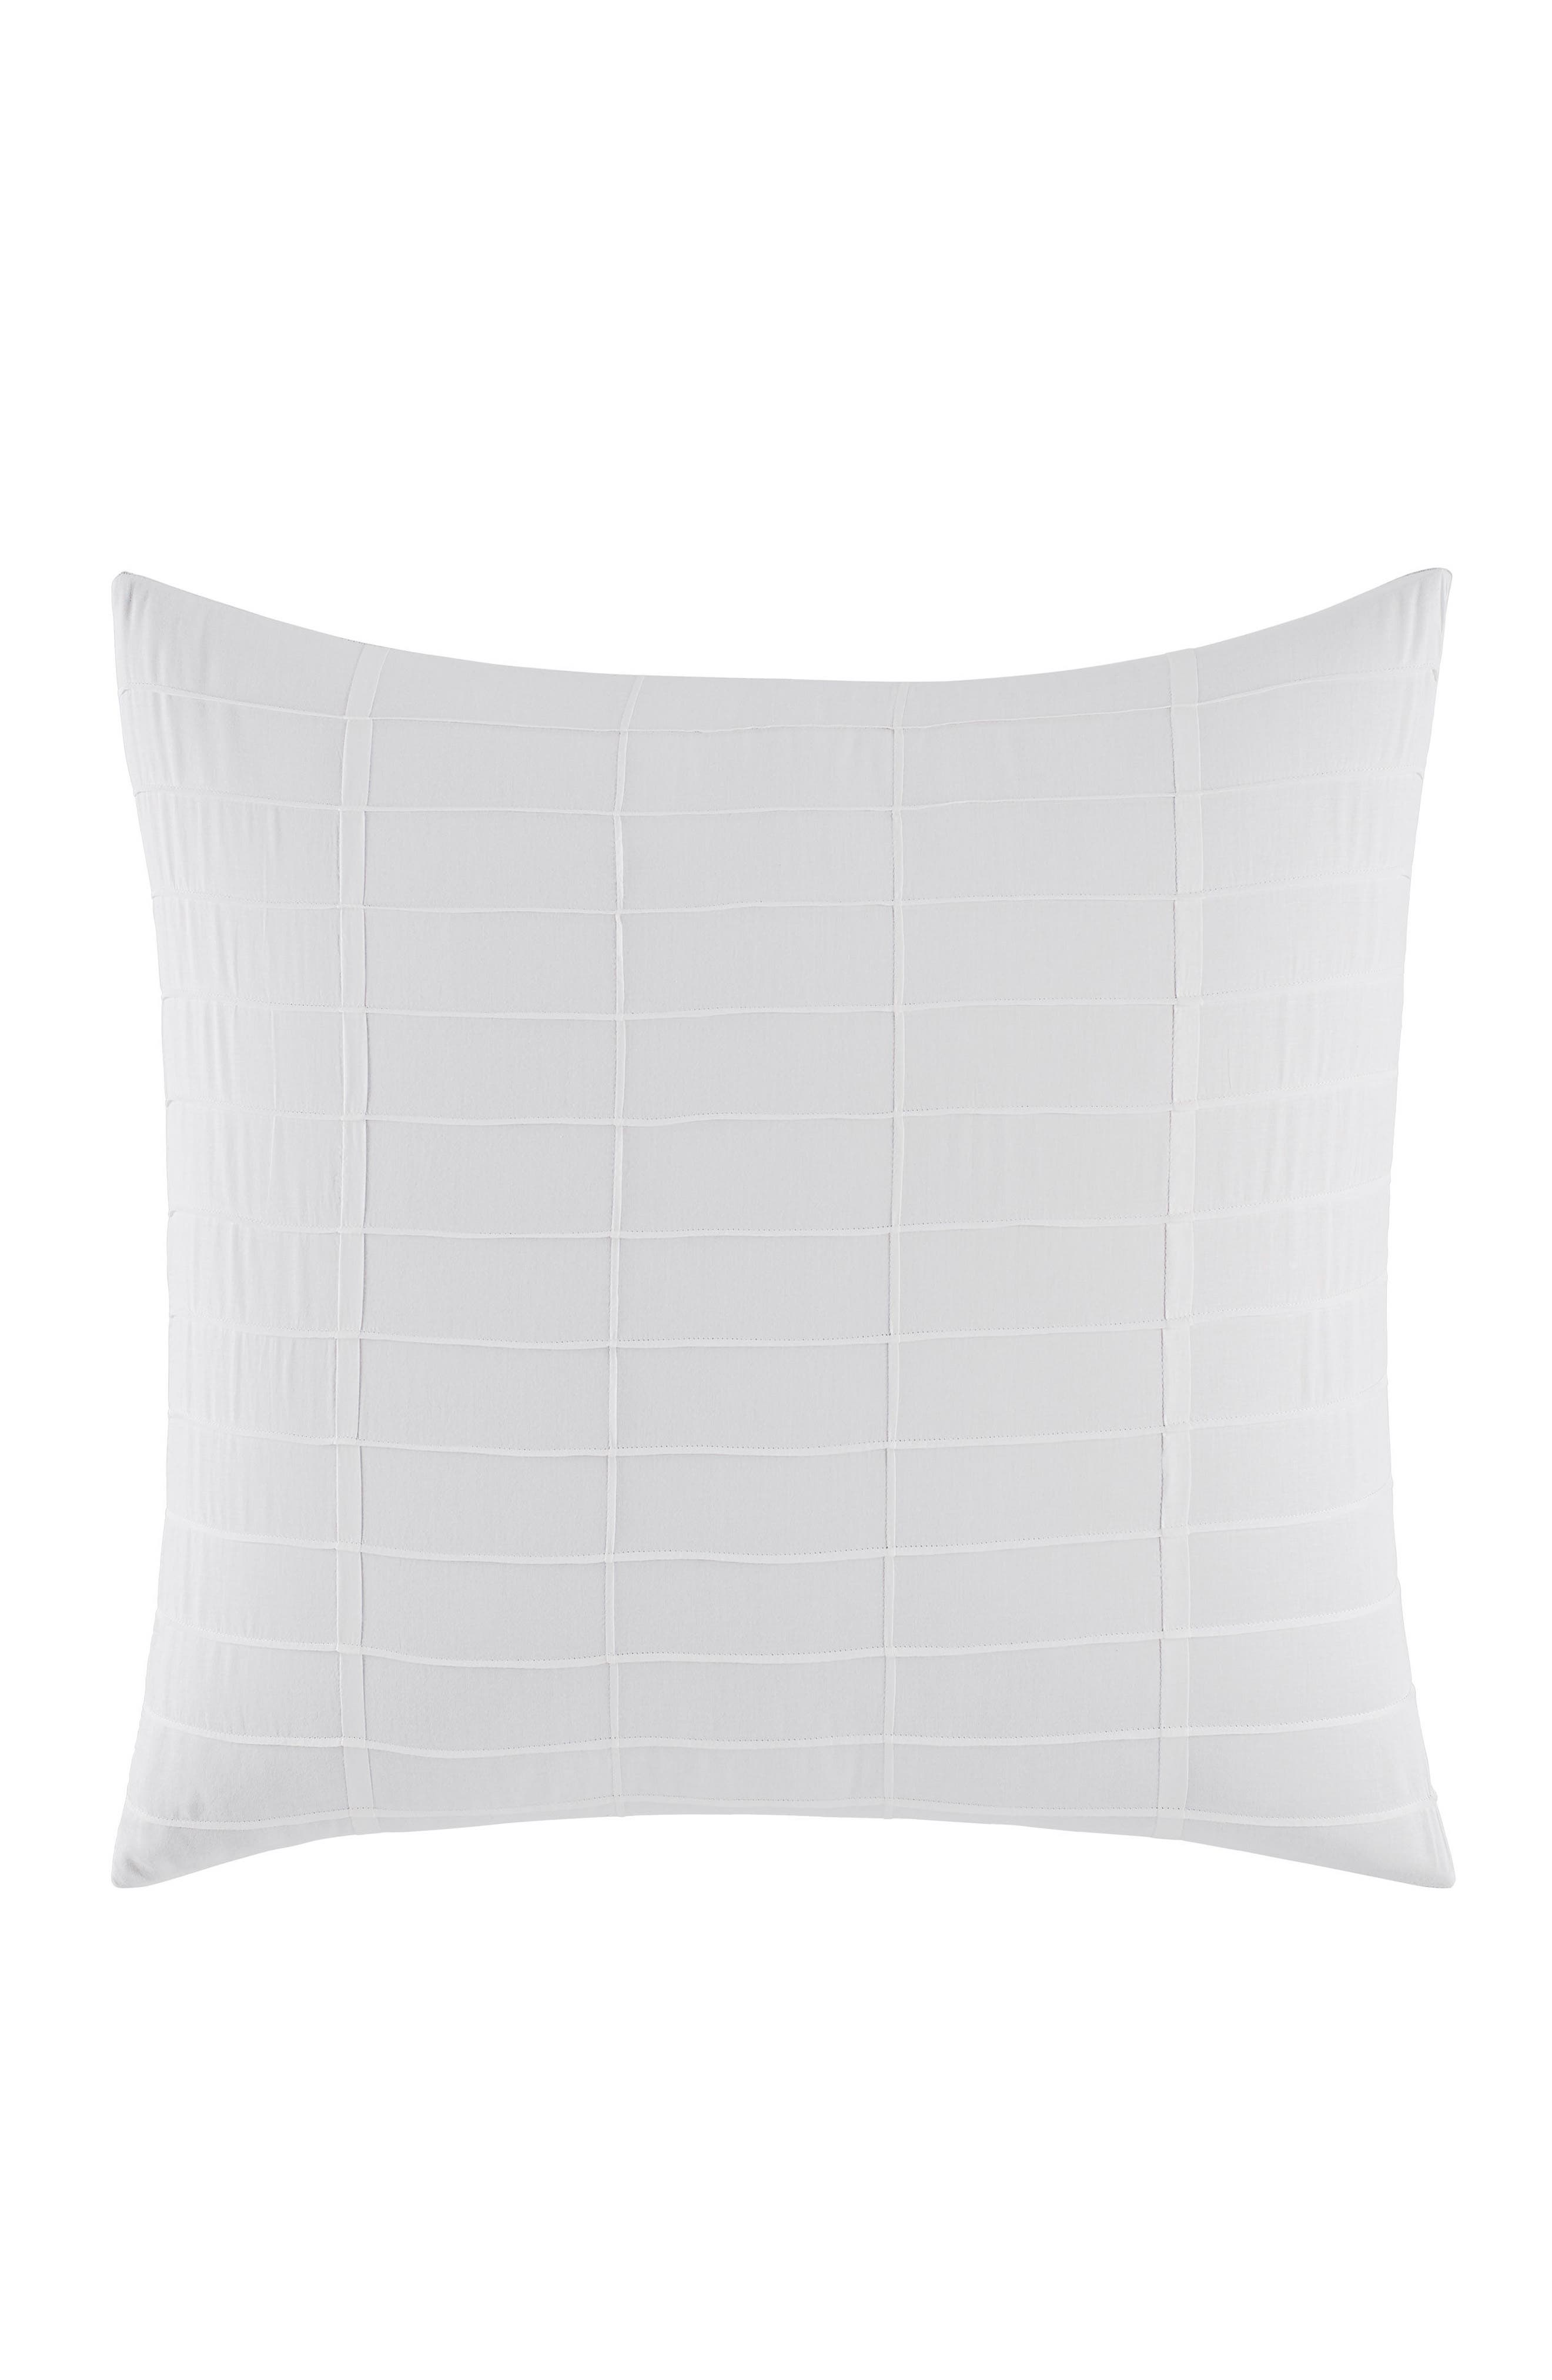 Vera Wang Mirrored Square Euro Sham